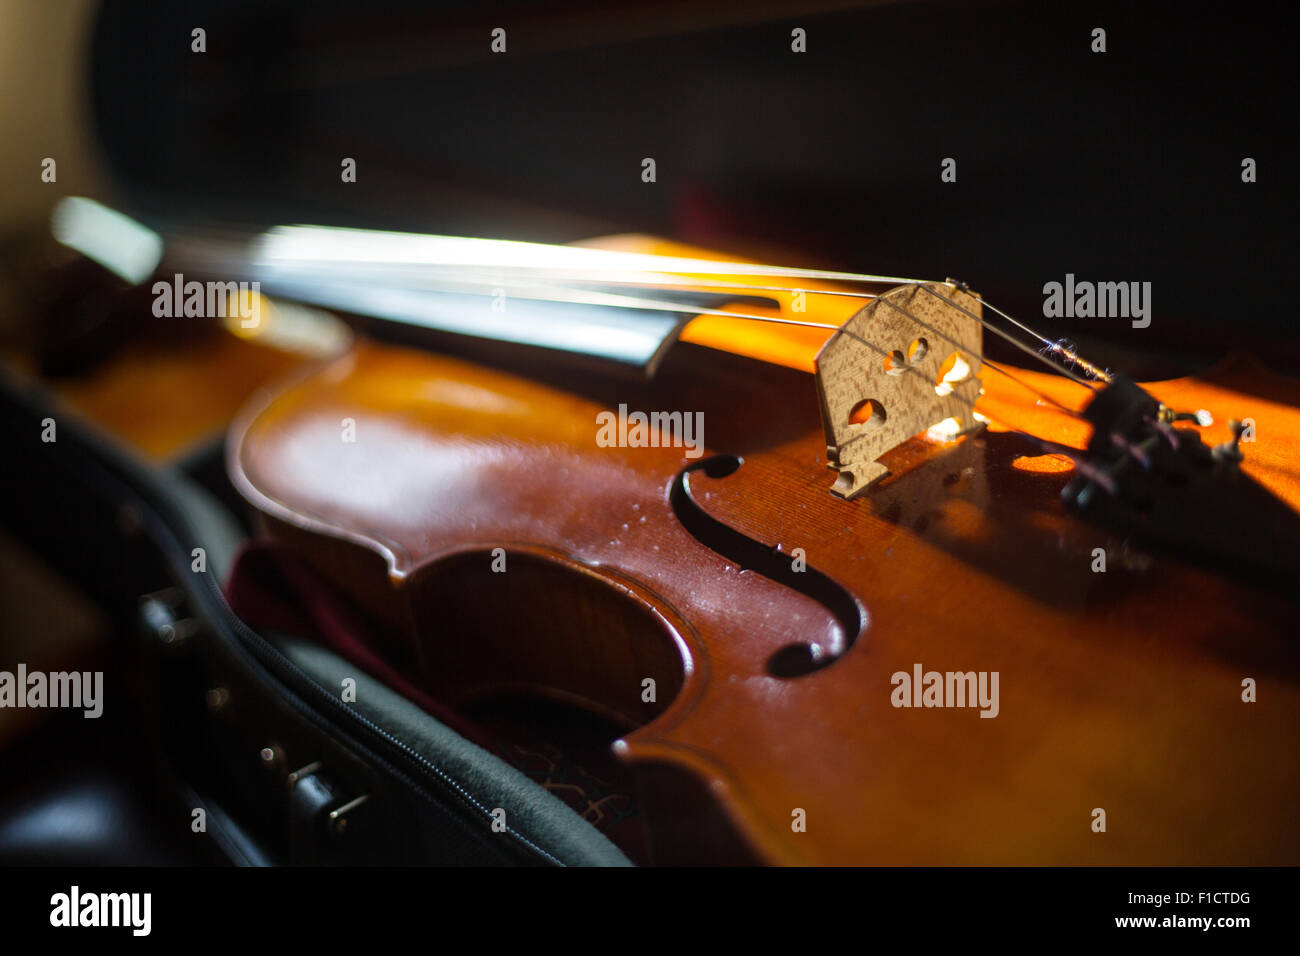 Detail of a viola in case - Stock Image